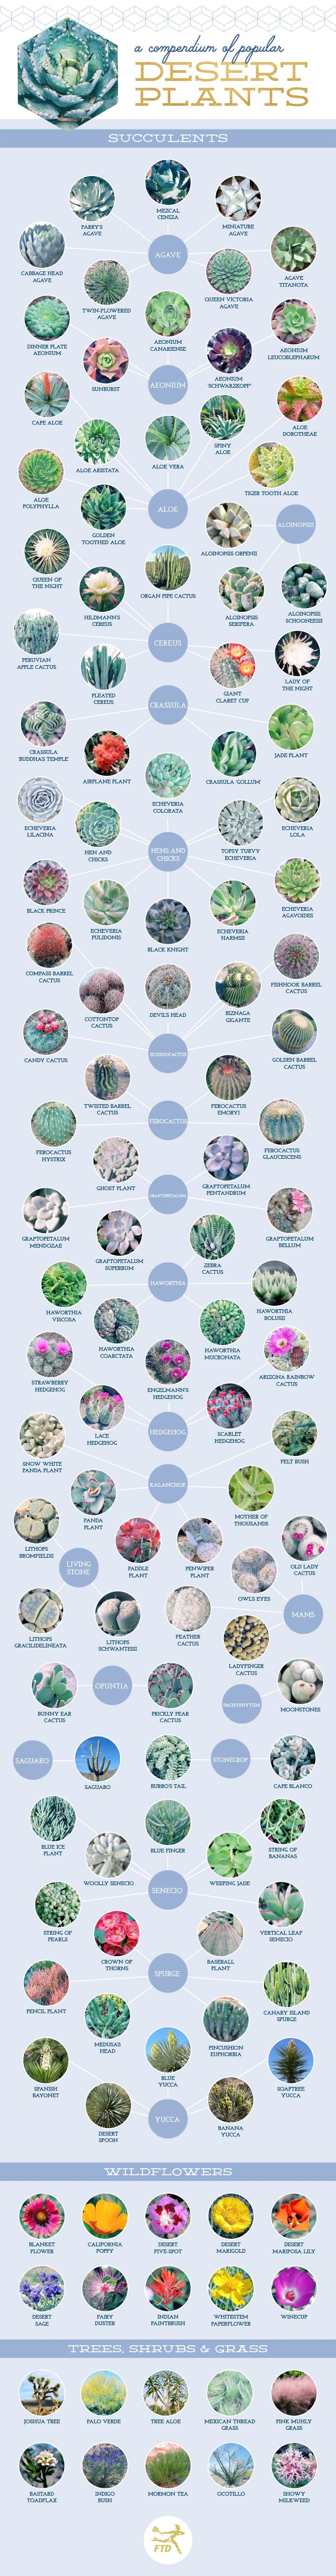 A Compendium of Popular Desert Plants #Infographic #Plants